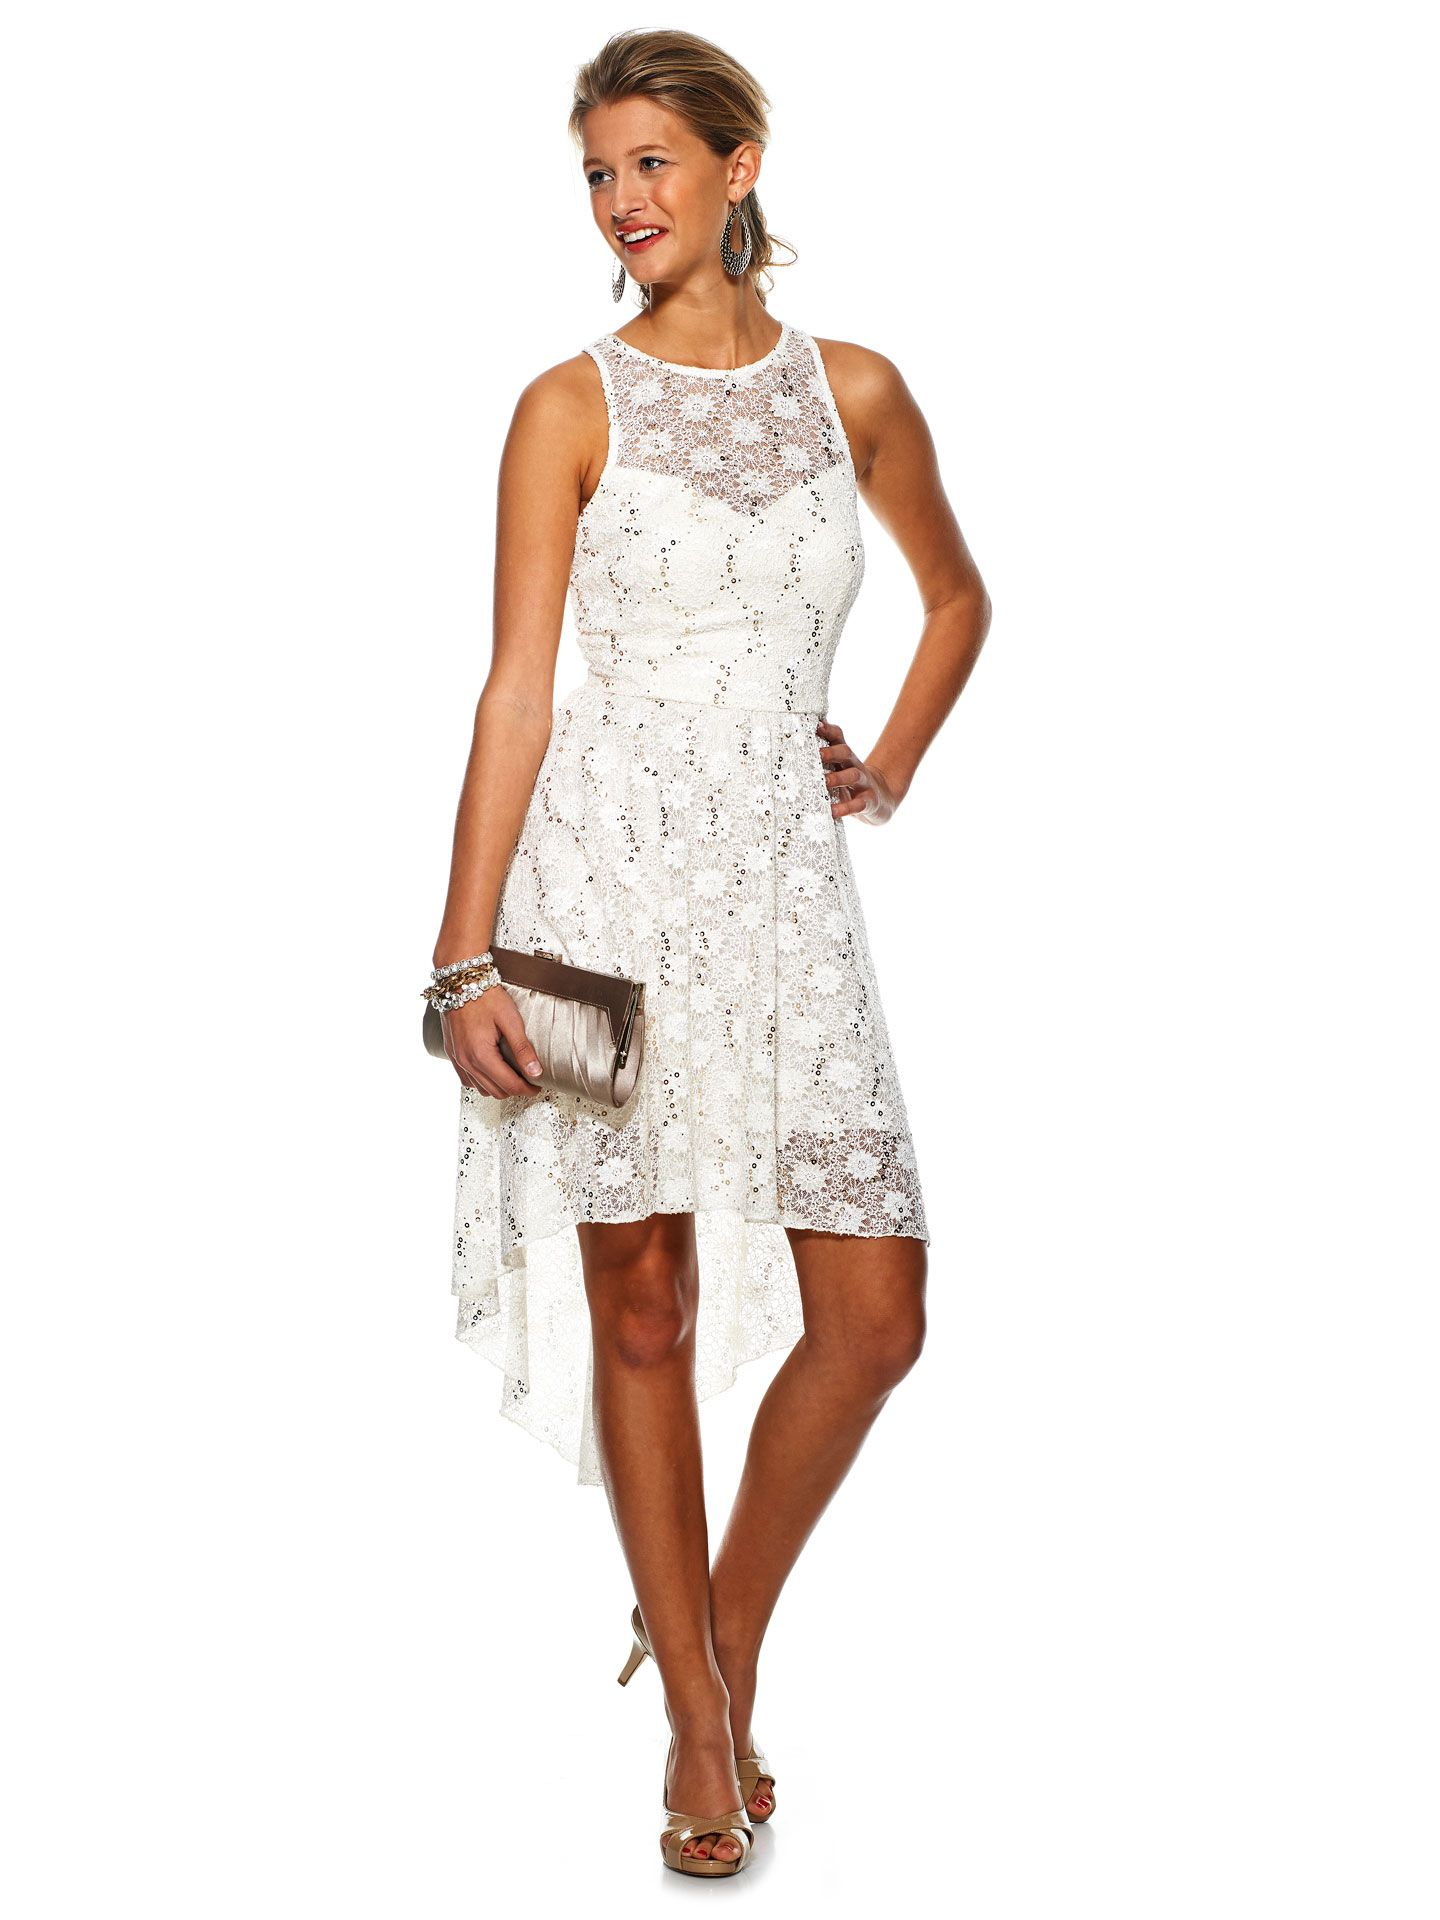 2b87b8cf50d 12 ~White Hot~ Prom Dresses You ll LIVE For